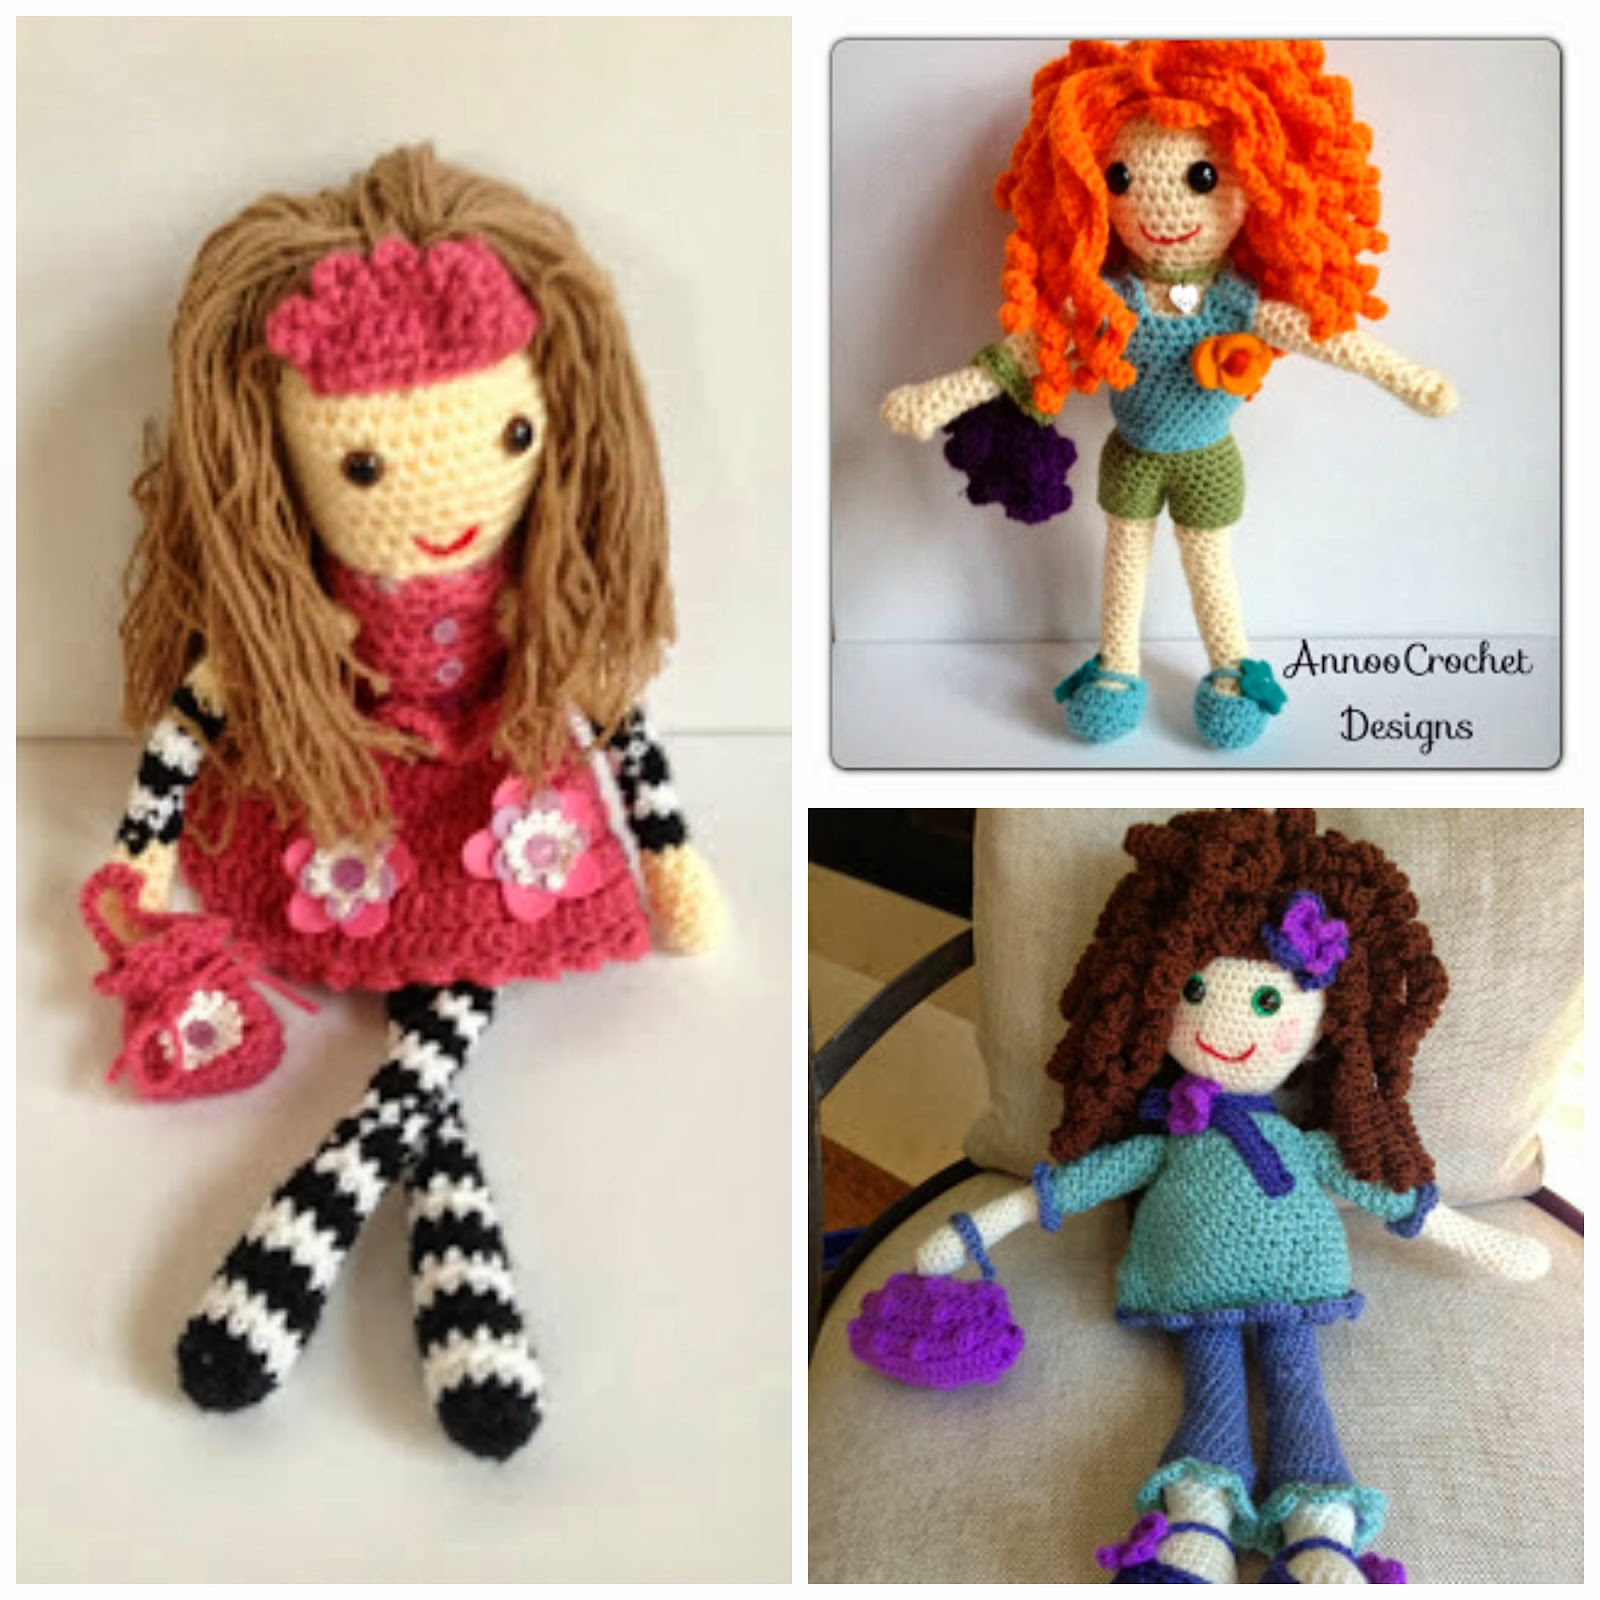 Crochet Doll Pattern Easy : Free Crochet Rag Doll Patterns images